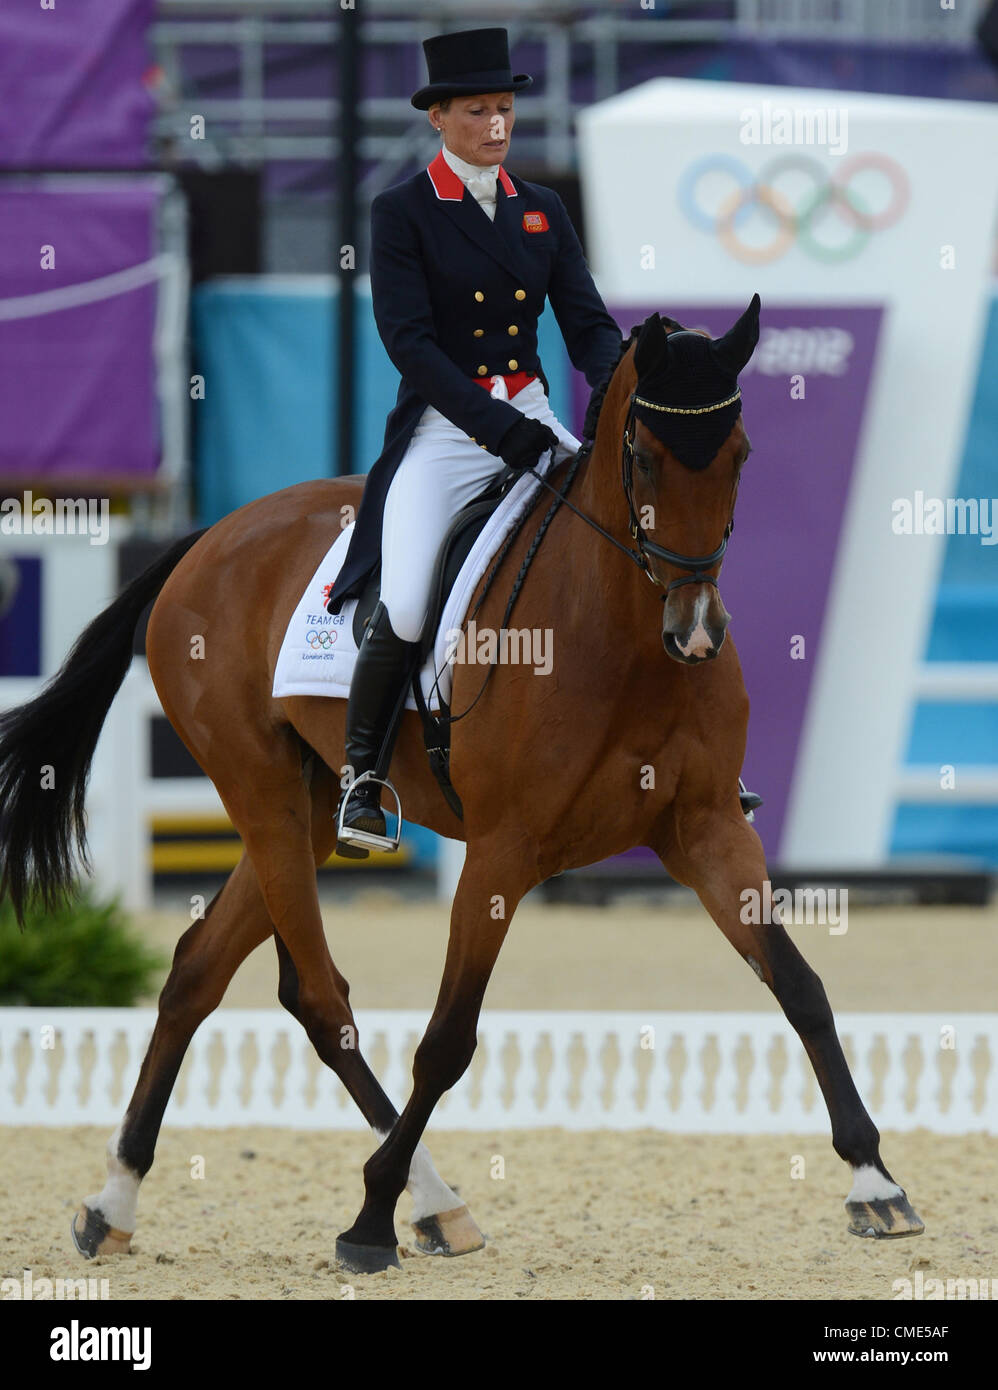 28.07.2012. London, England.  British eventing rider Mary King performs with her horse Imperial Cavalier in the - Stock Image